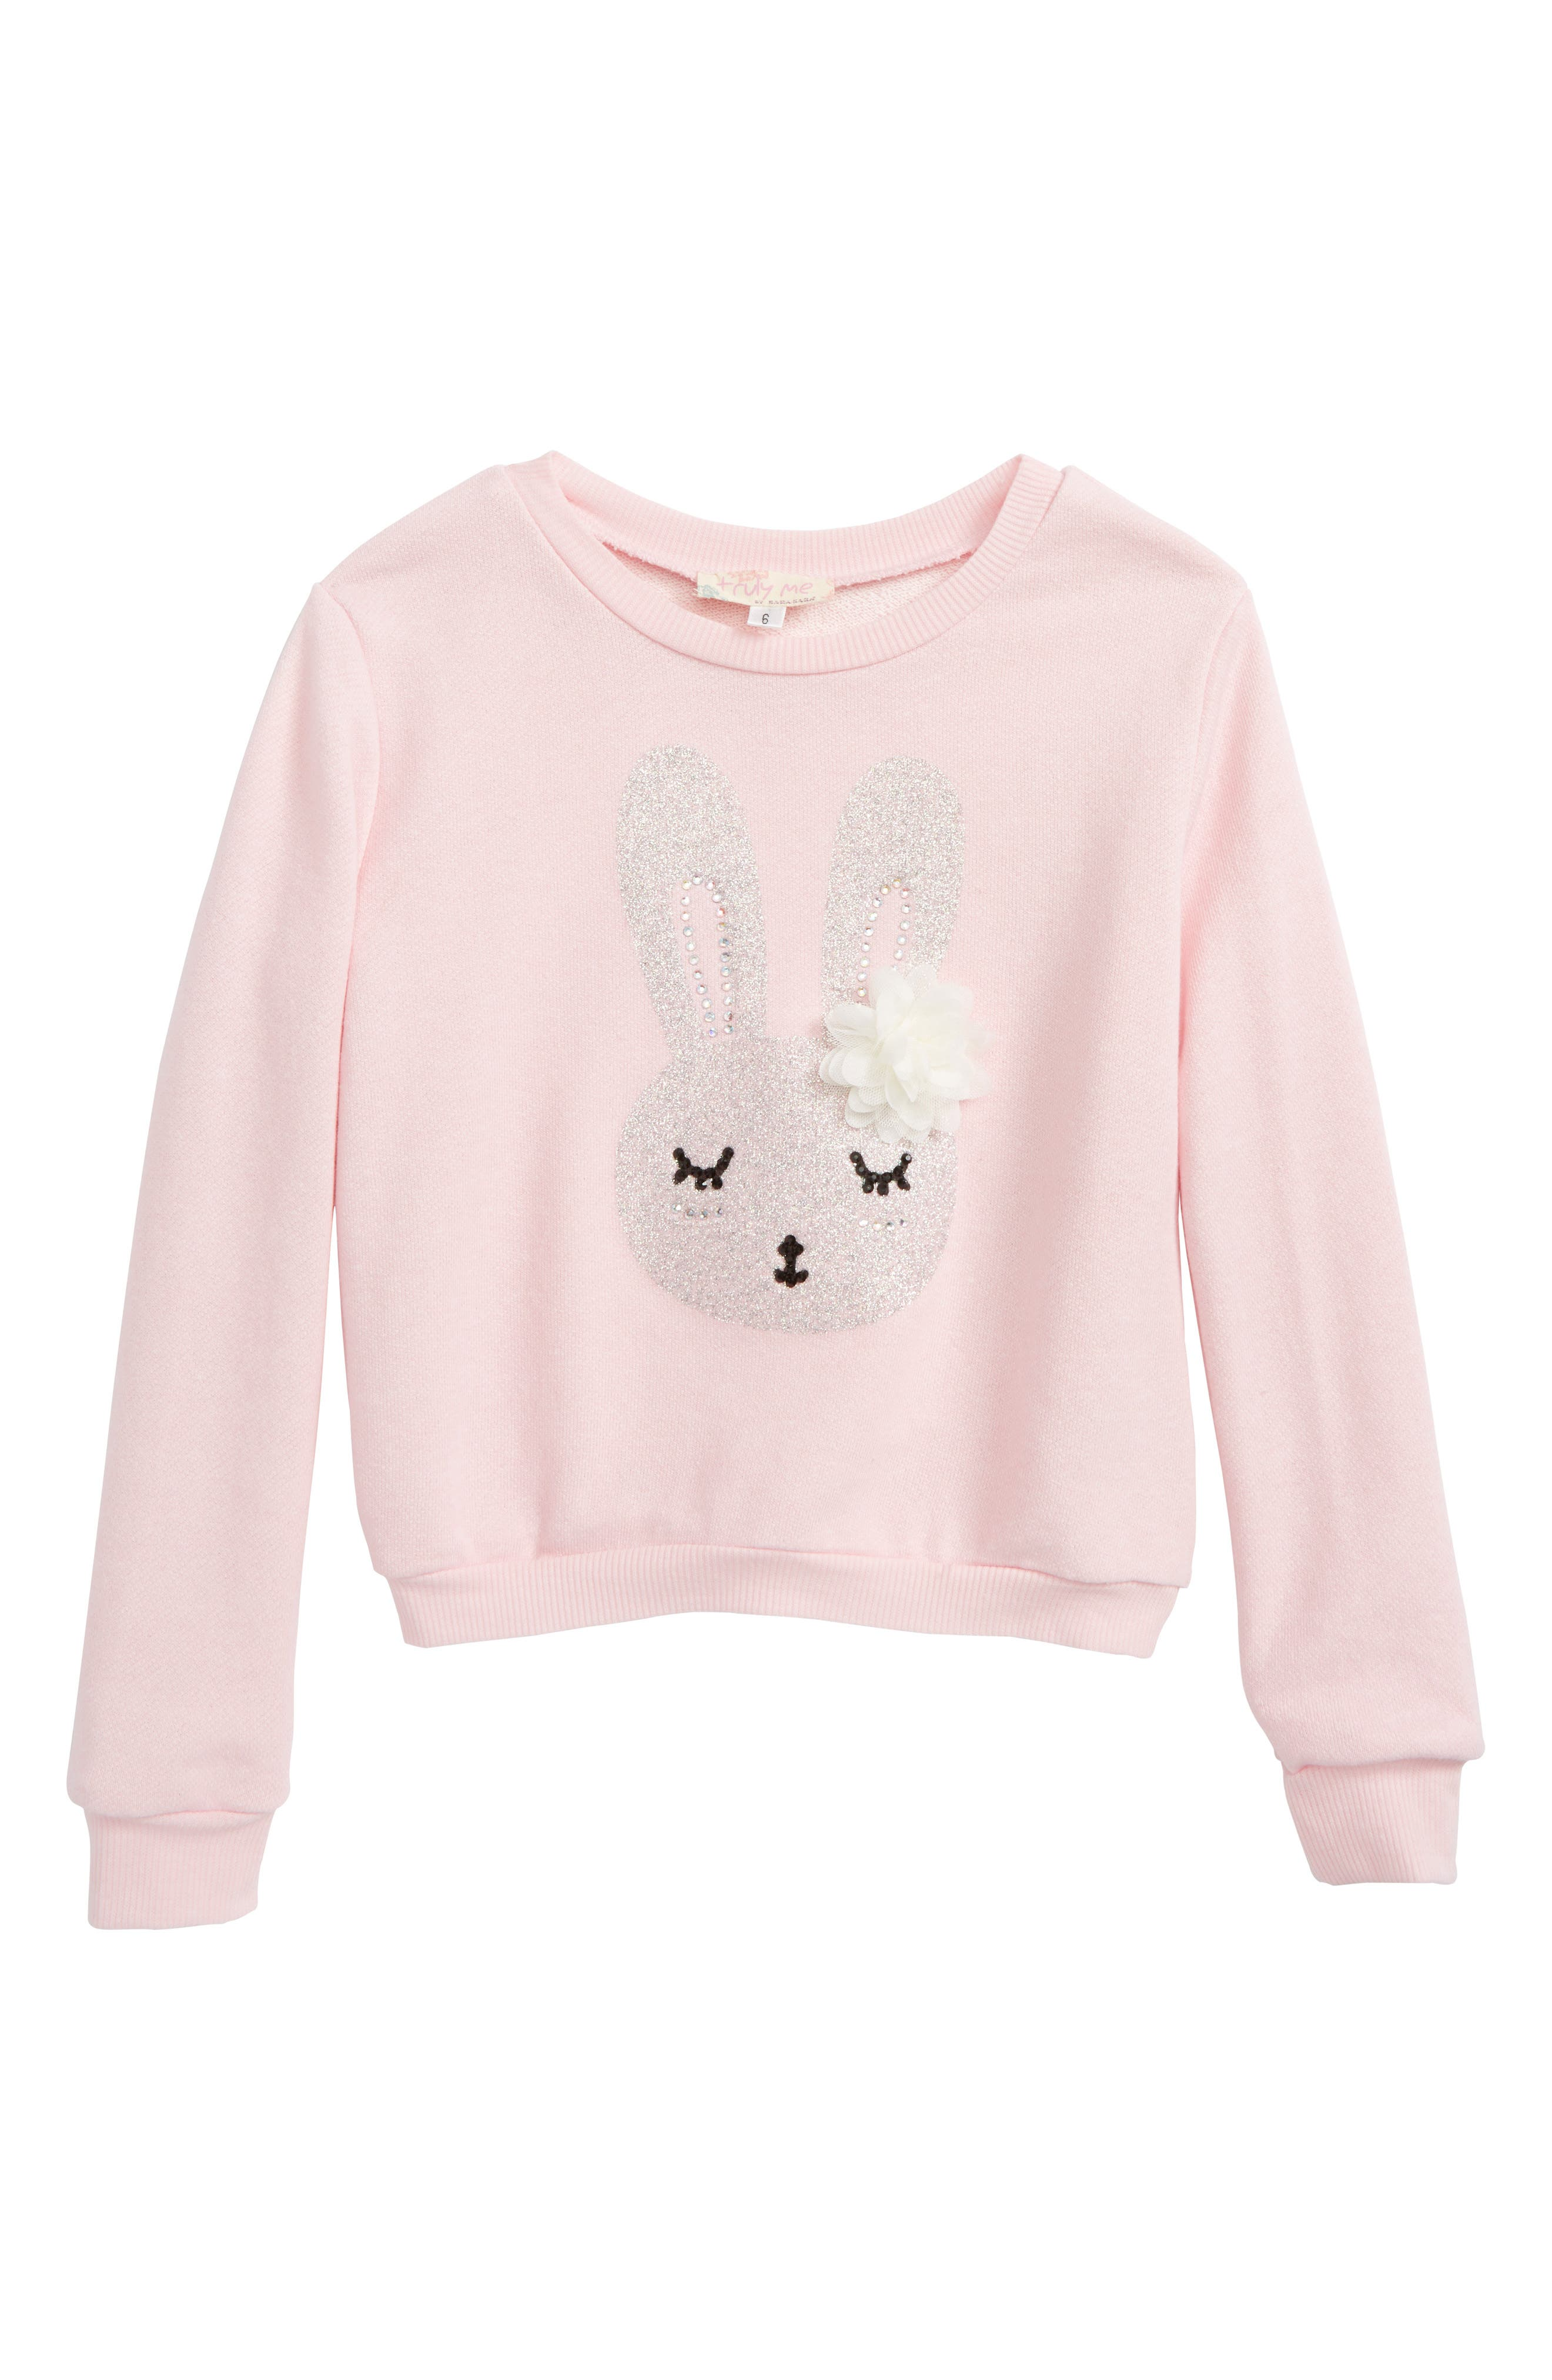 TRULY ME,                             Bunny Graphic Sweatshirt,                             Main thumbnail 1, color,                             680